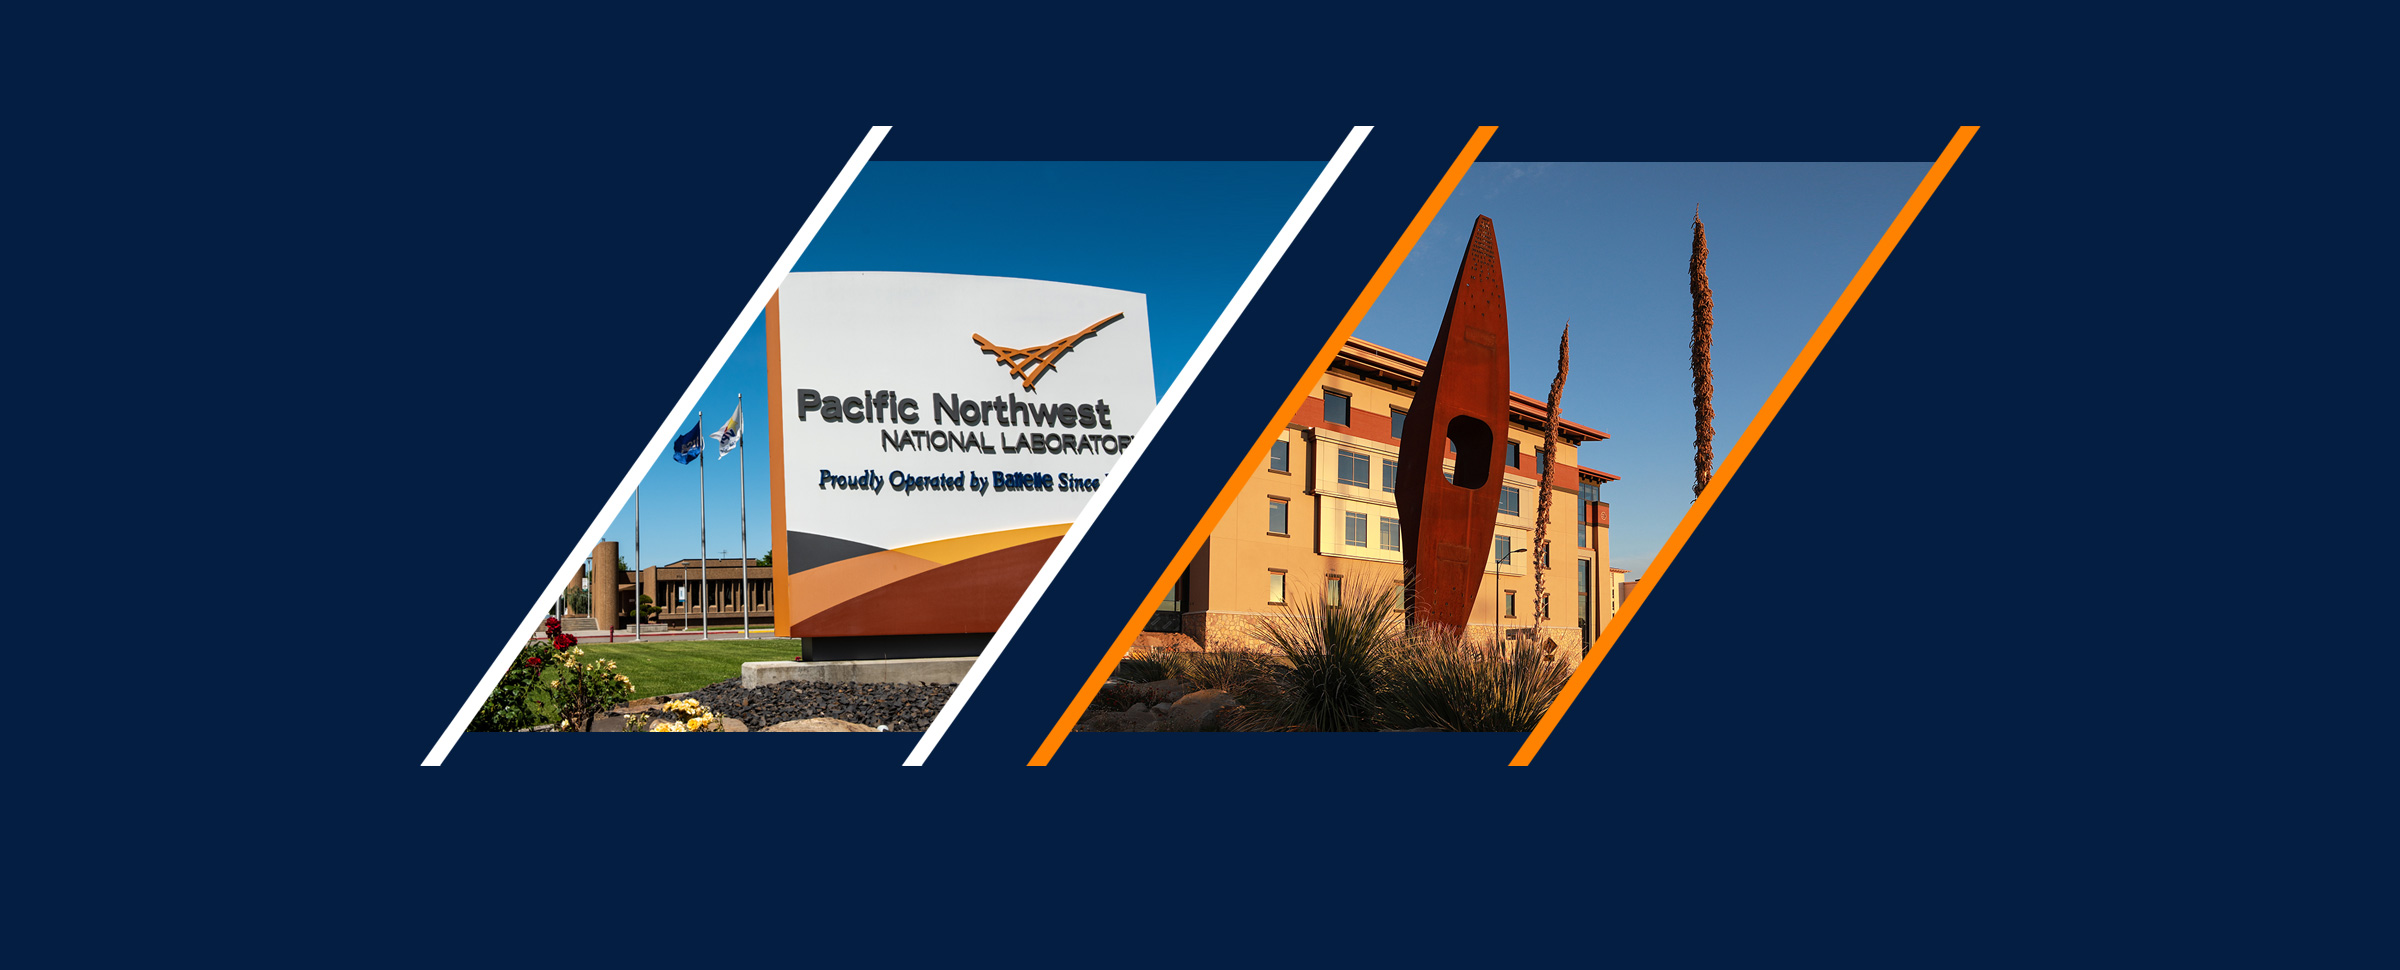 UTEP Expands Partnership with Pacific Northwest National Laboratory